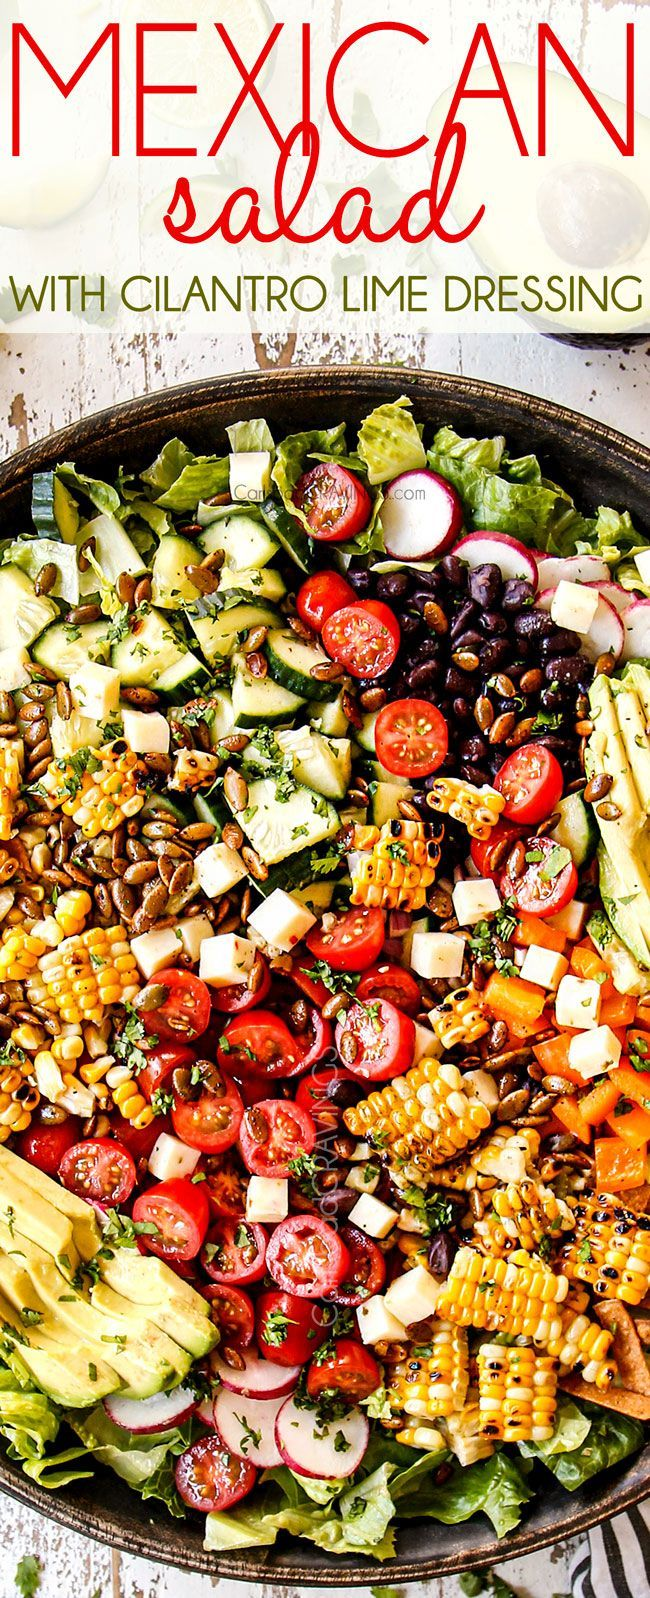 Found This On Pinterest In 2020 Mexican Salad Recipes Mexican Salads Main Dish Salads